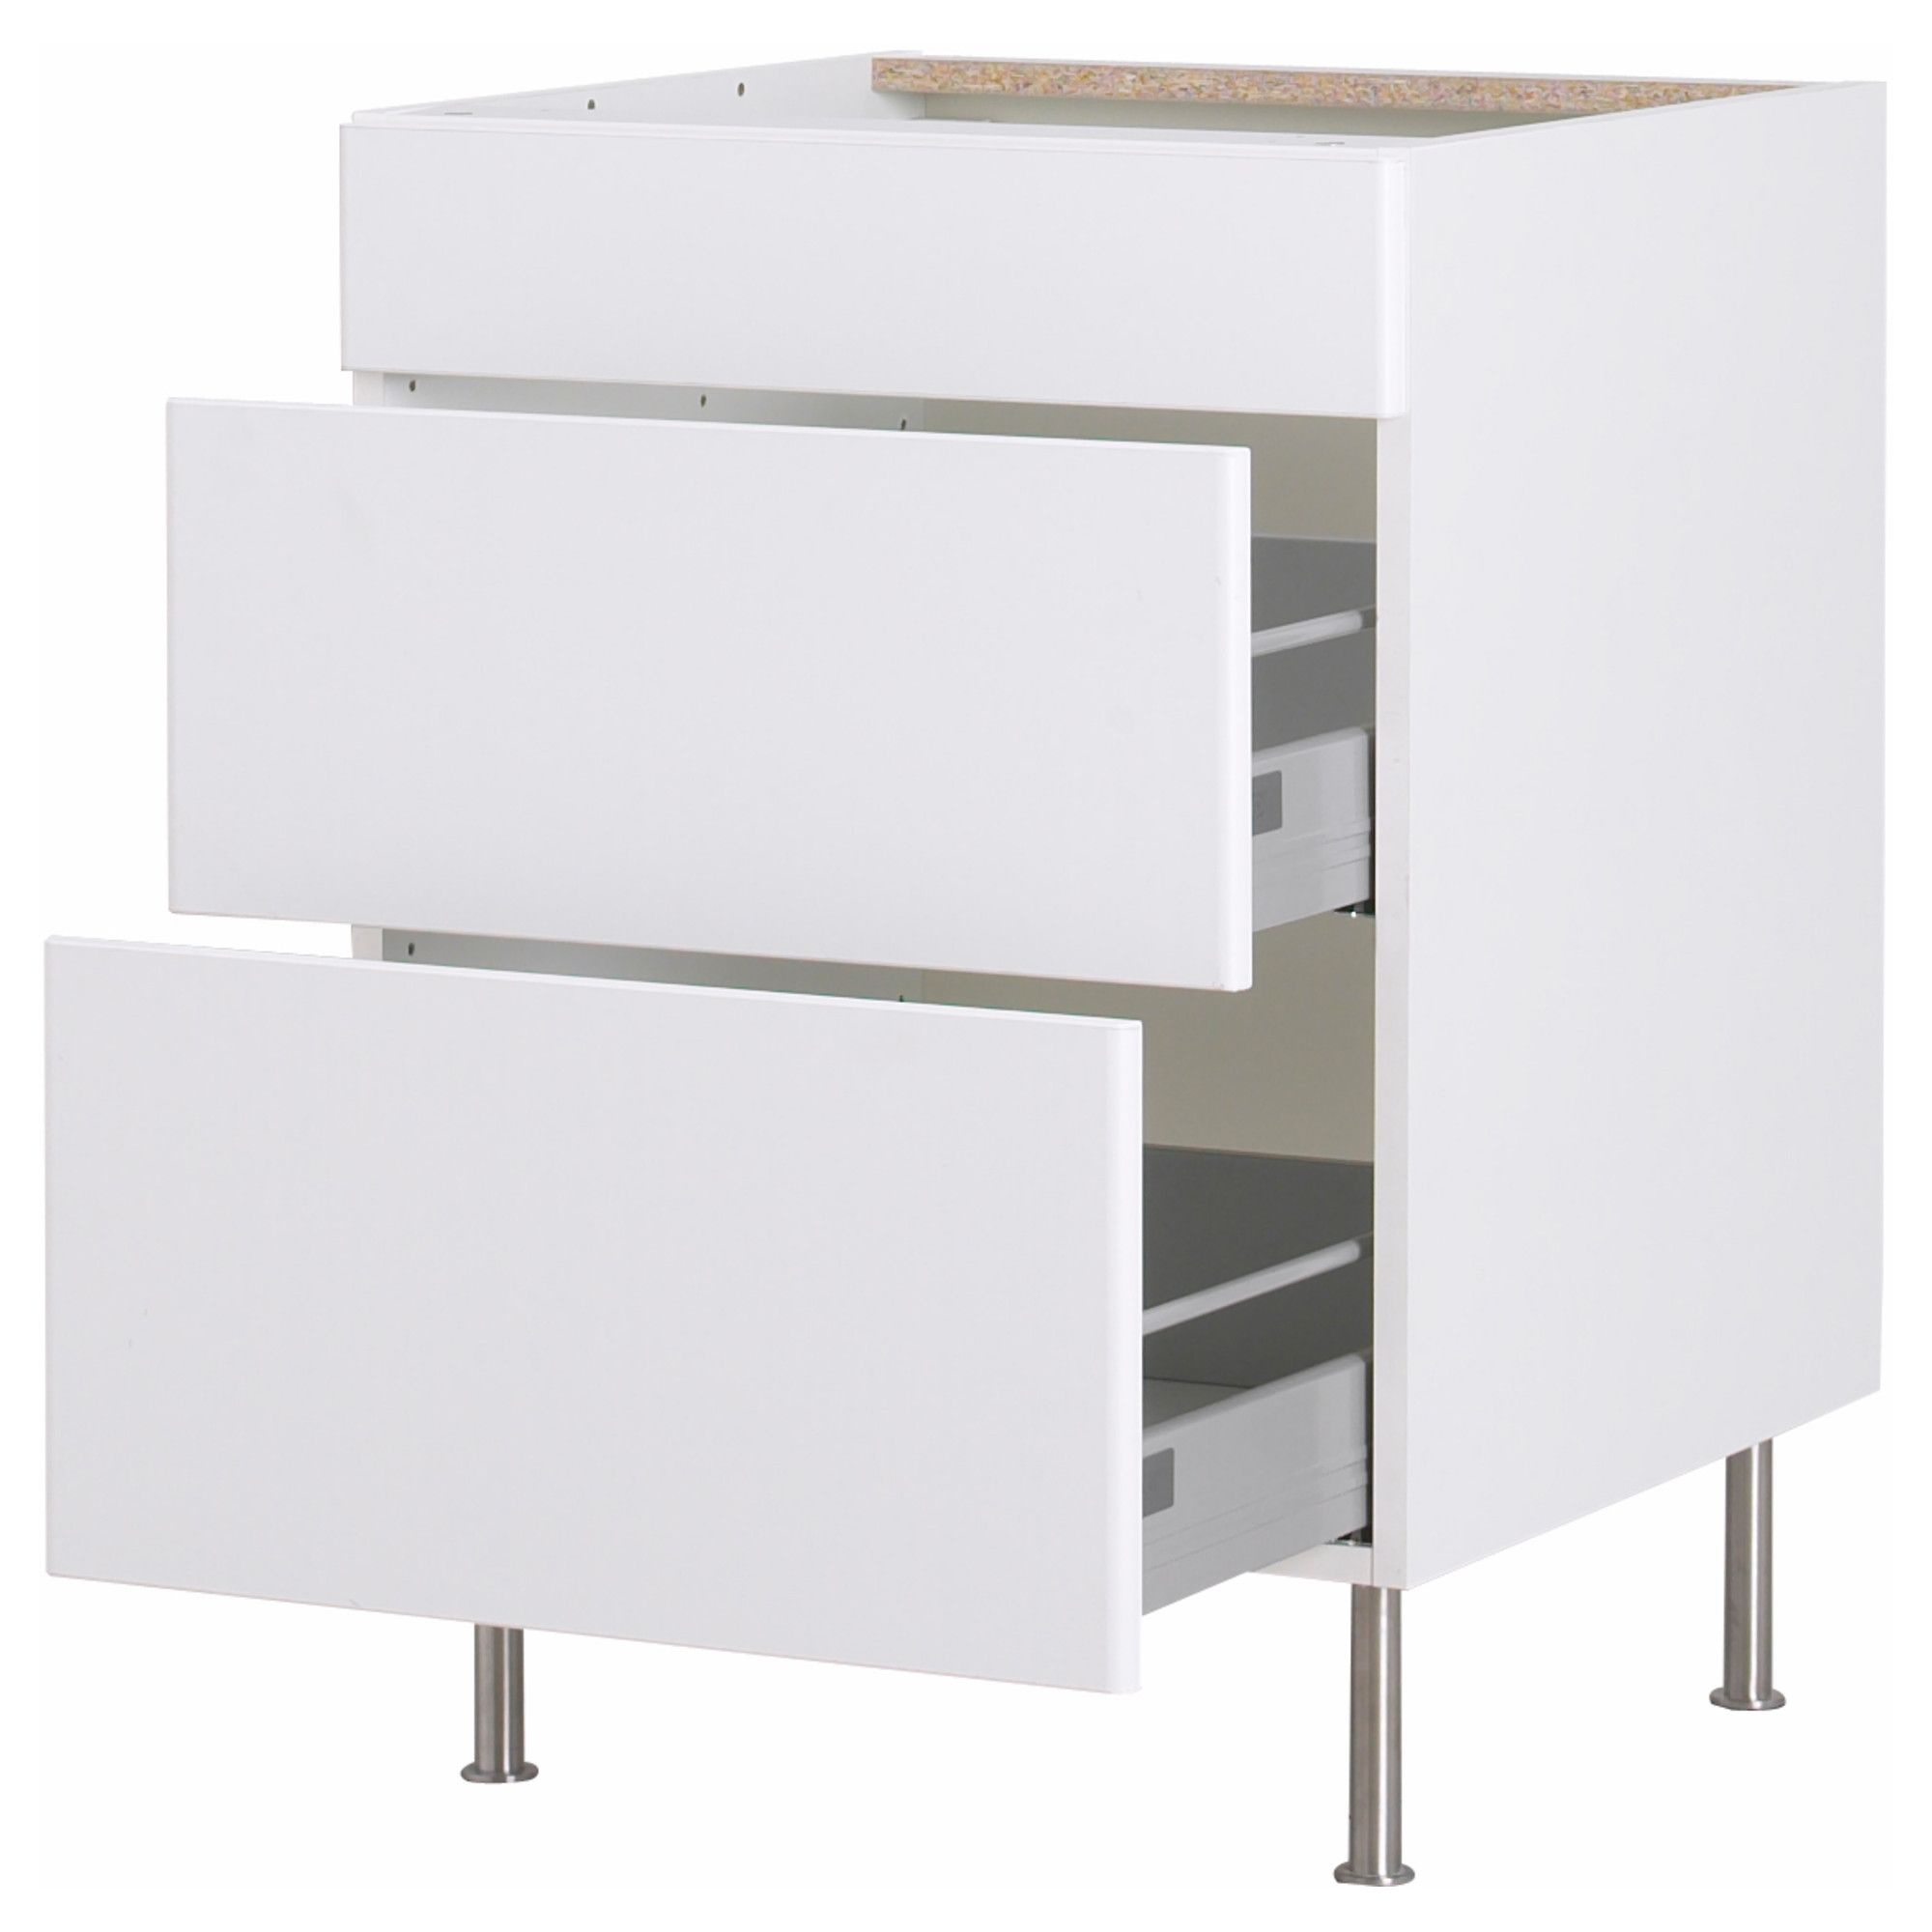 Akurum Base Cabinet With 3 Drawers White H Rlig White 24 Ikea Article Number